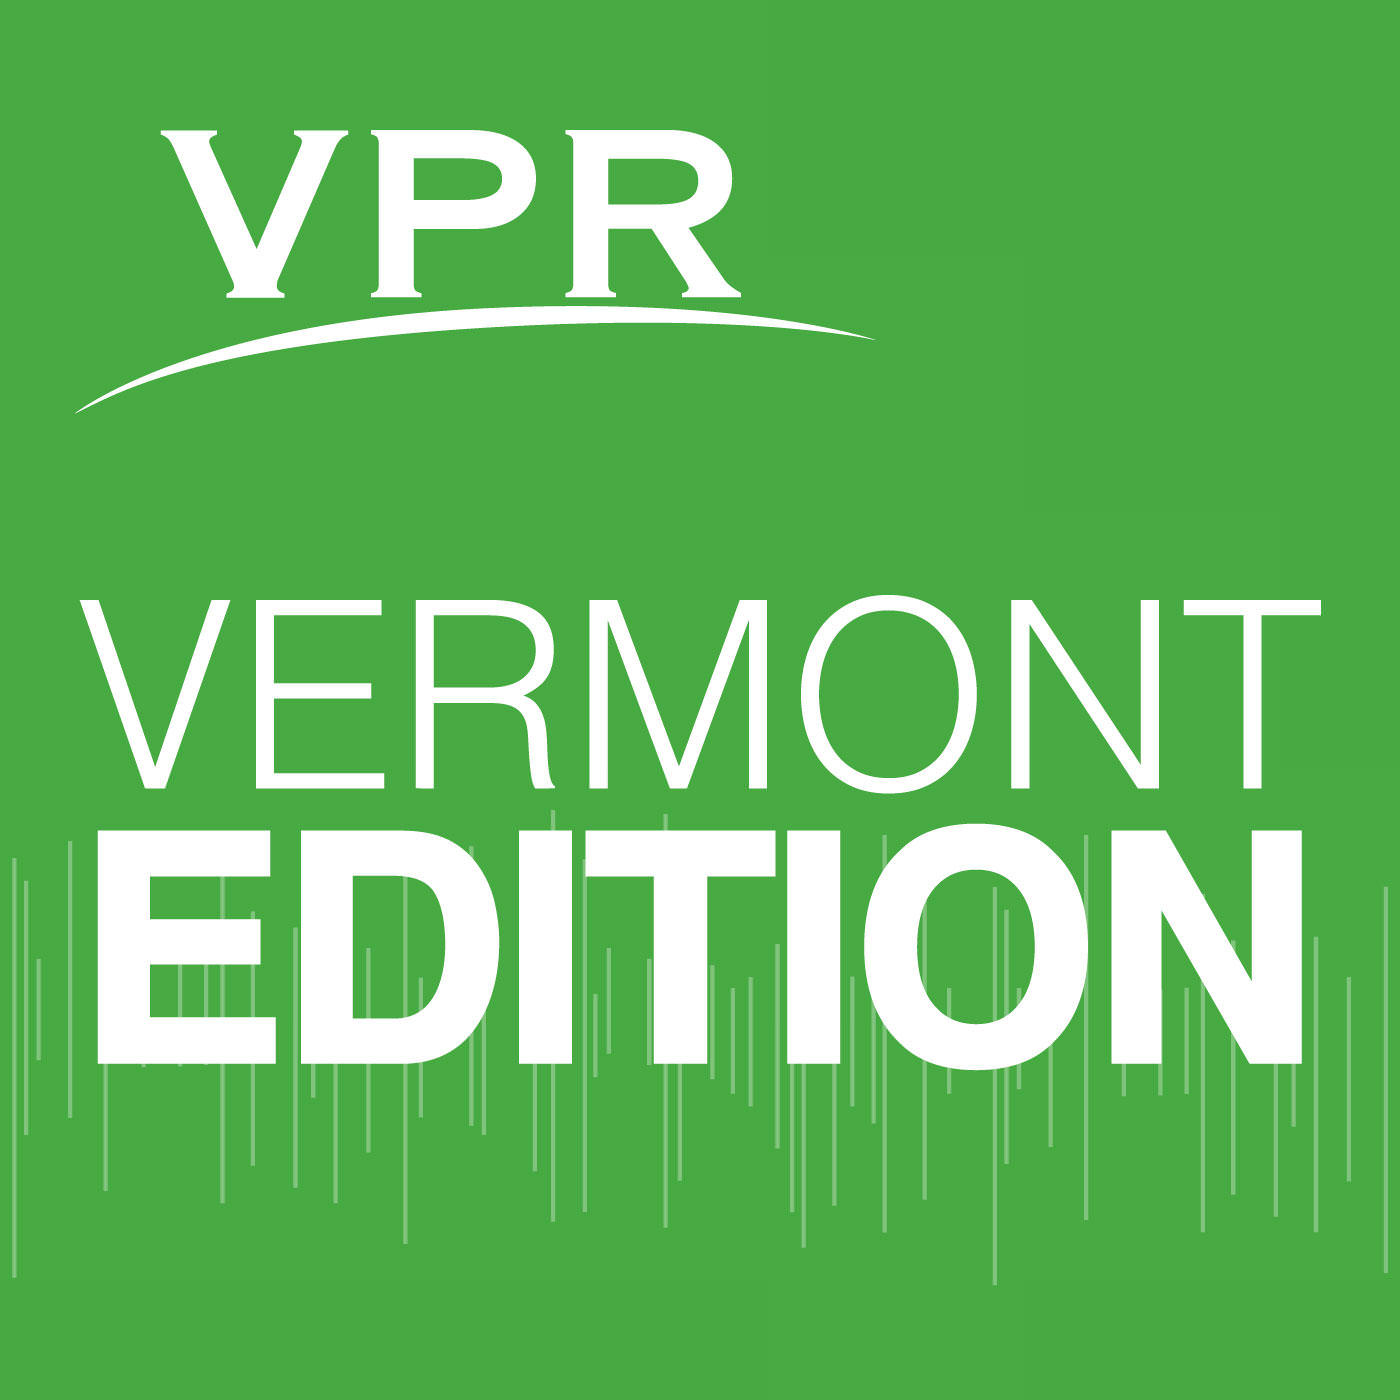 Jeremy-Holt-VPR-Podcast_Icons-Vermont_Edition.jpg